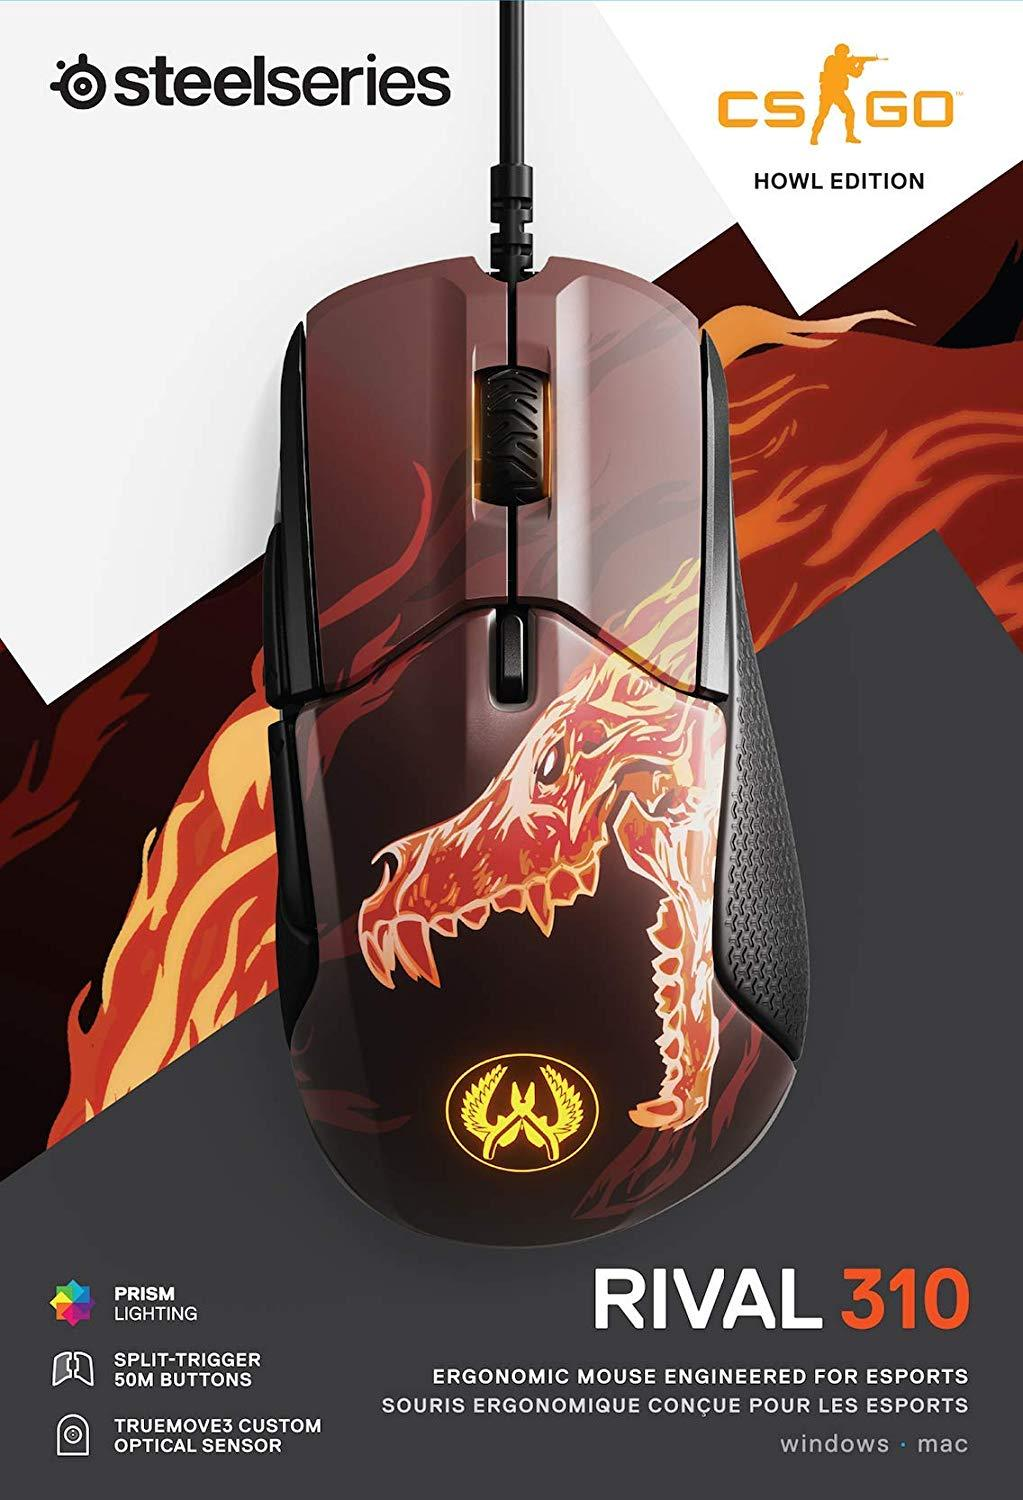 Steelseries Computer Mouse Philippines Pc Mice For Rival 300 Csgo Hyper Beast Edition 310 Howl